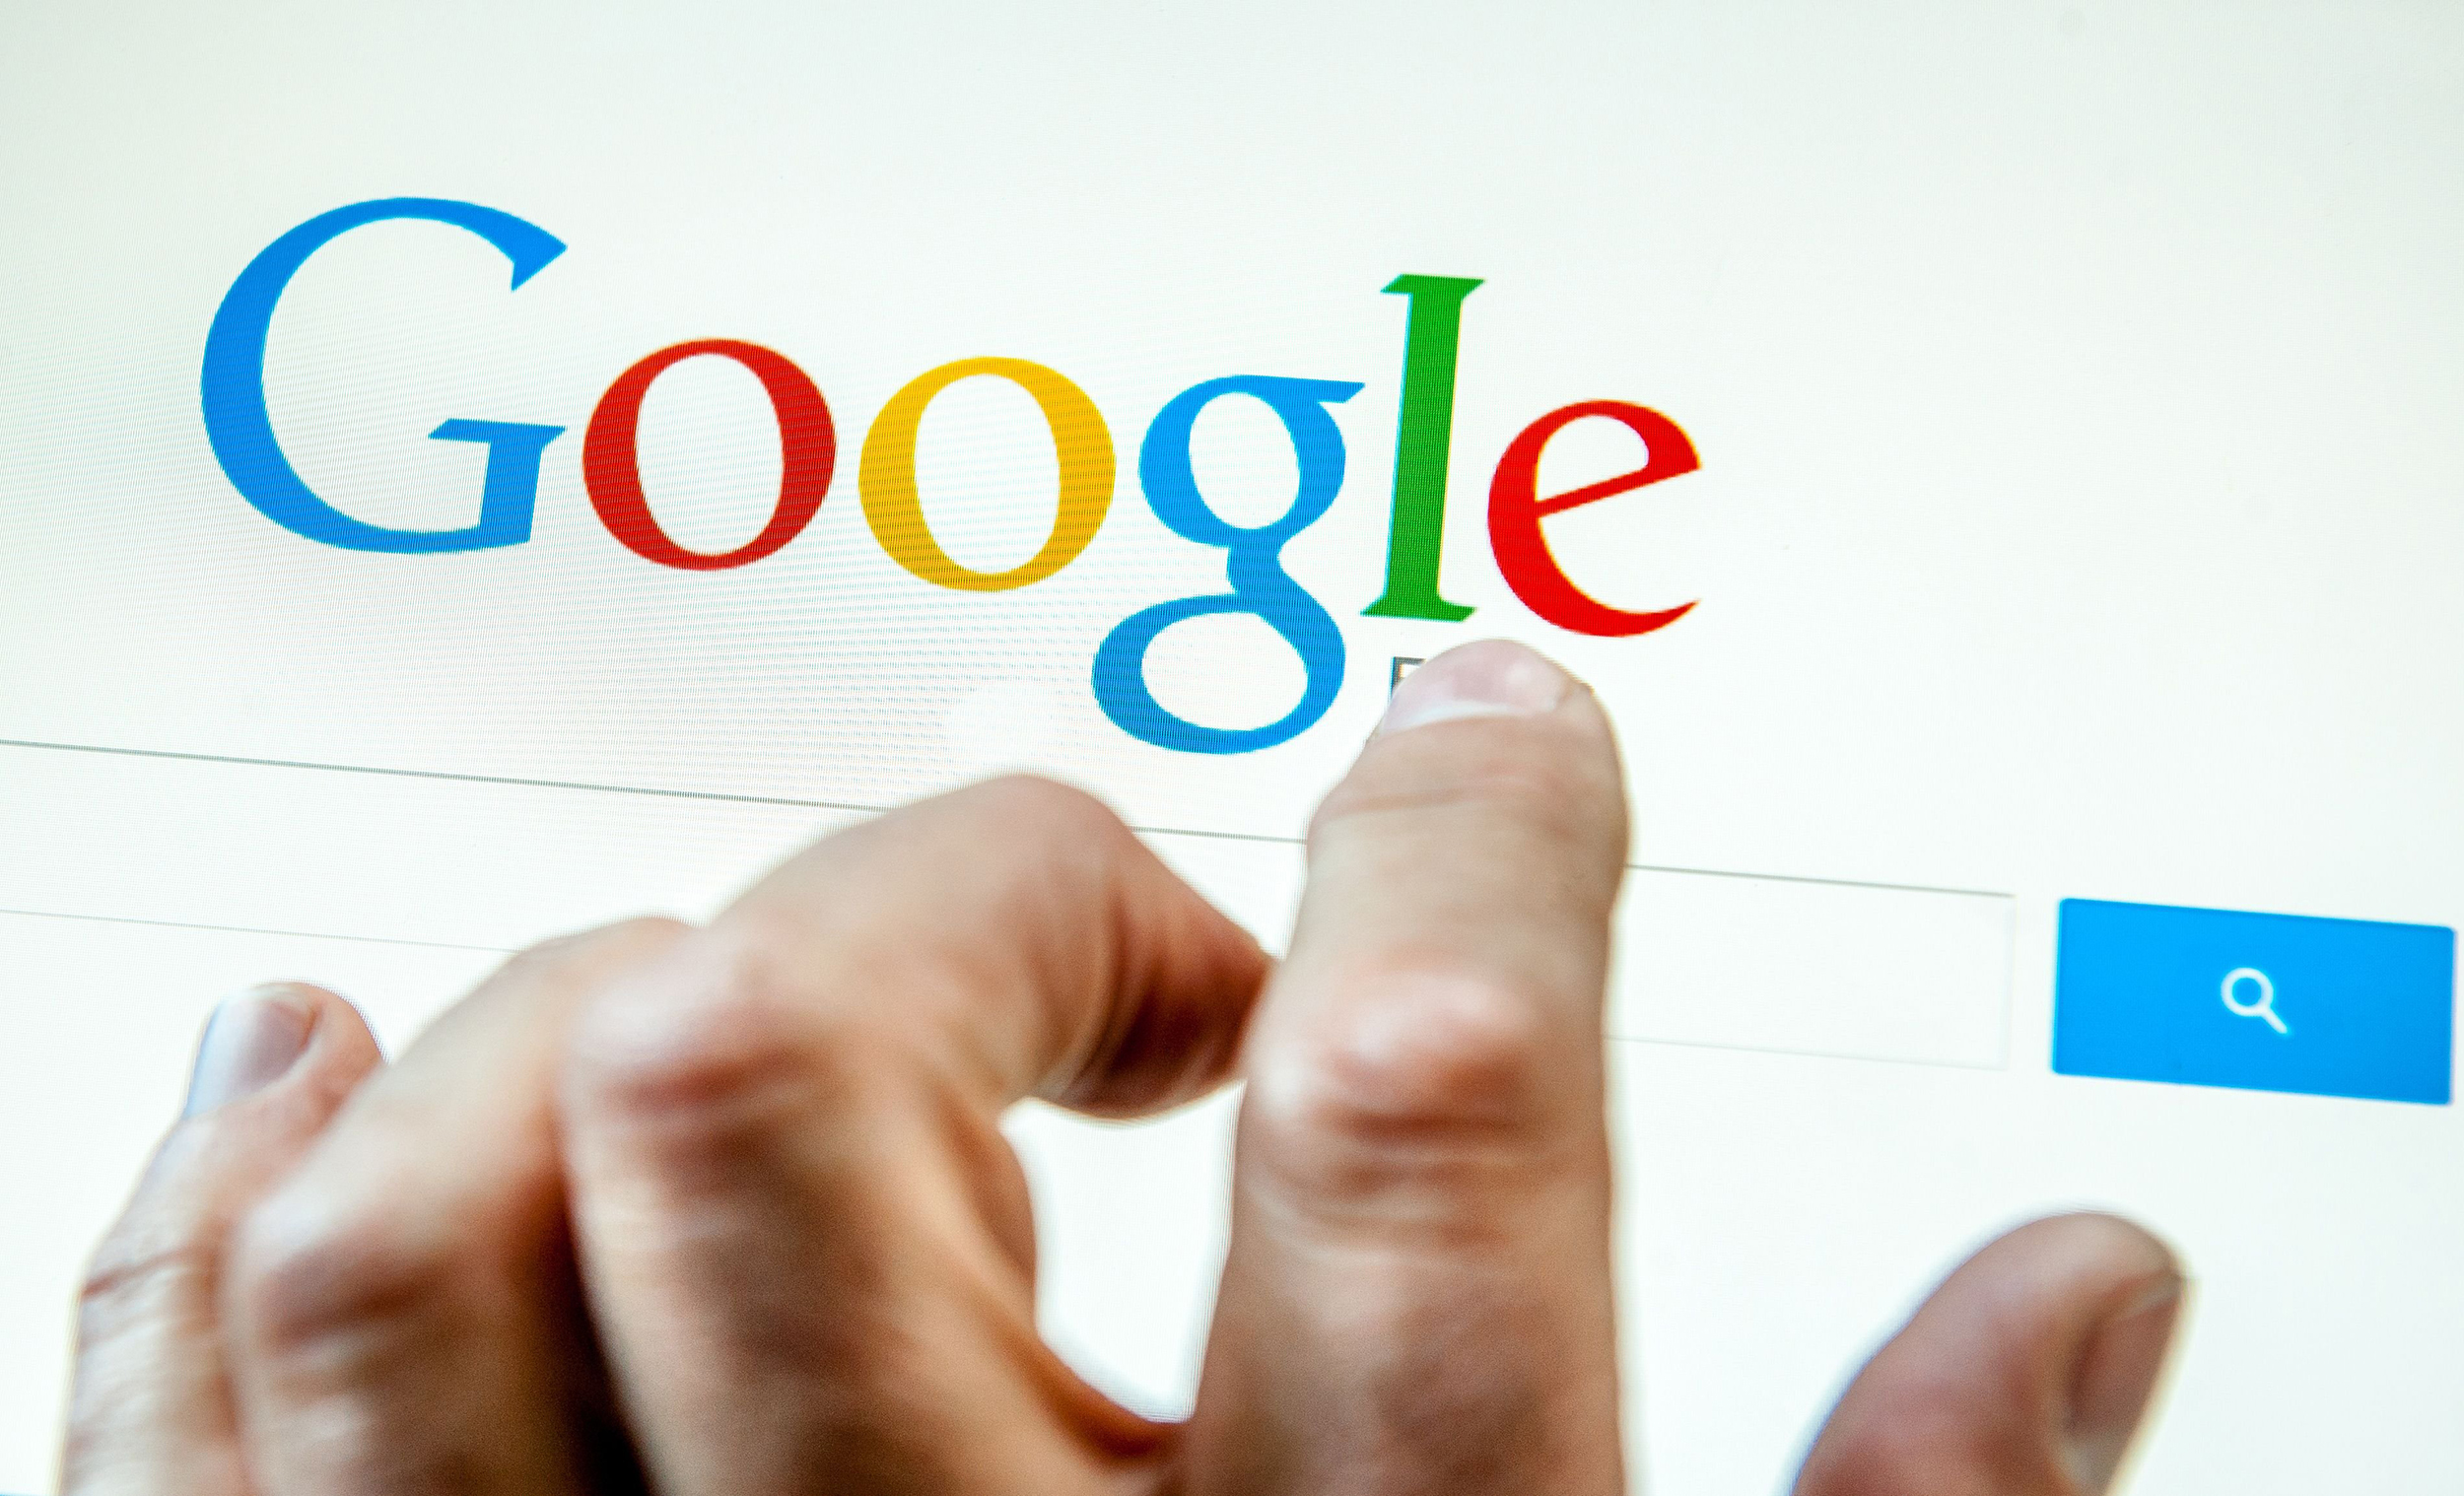 Google search algorithms are not impartial  They can be